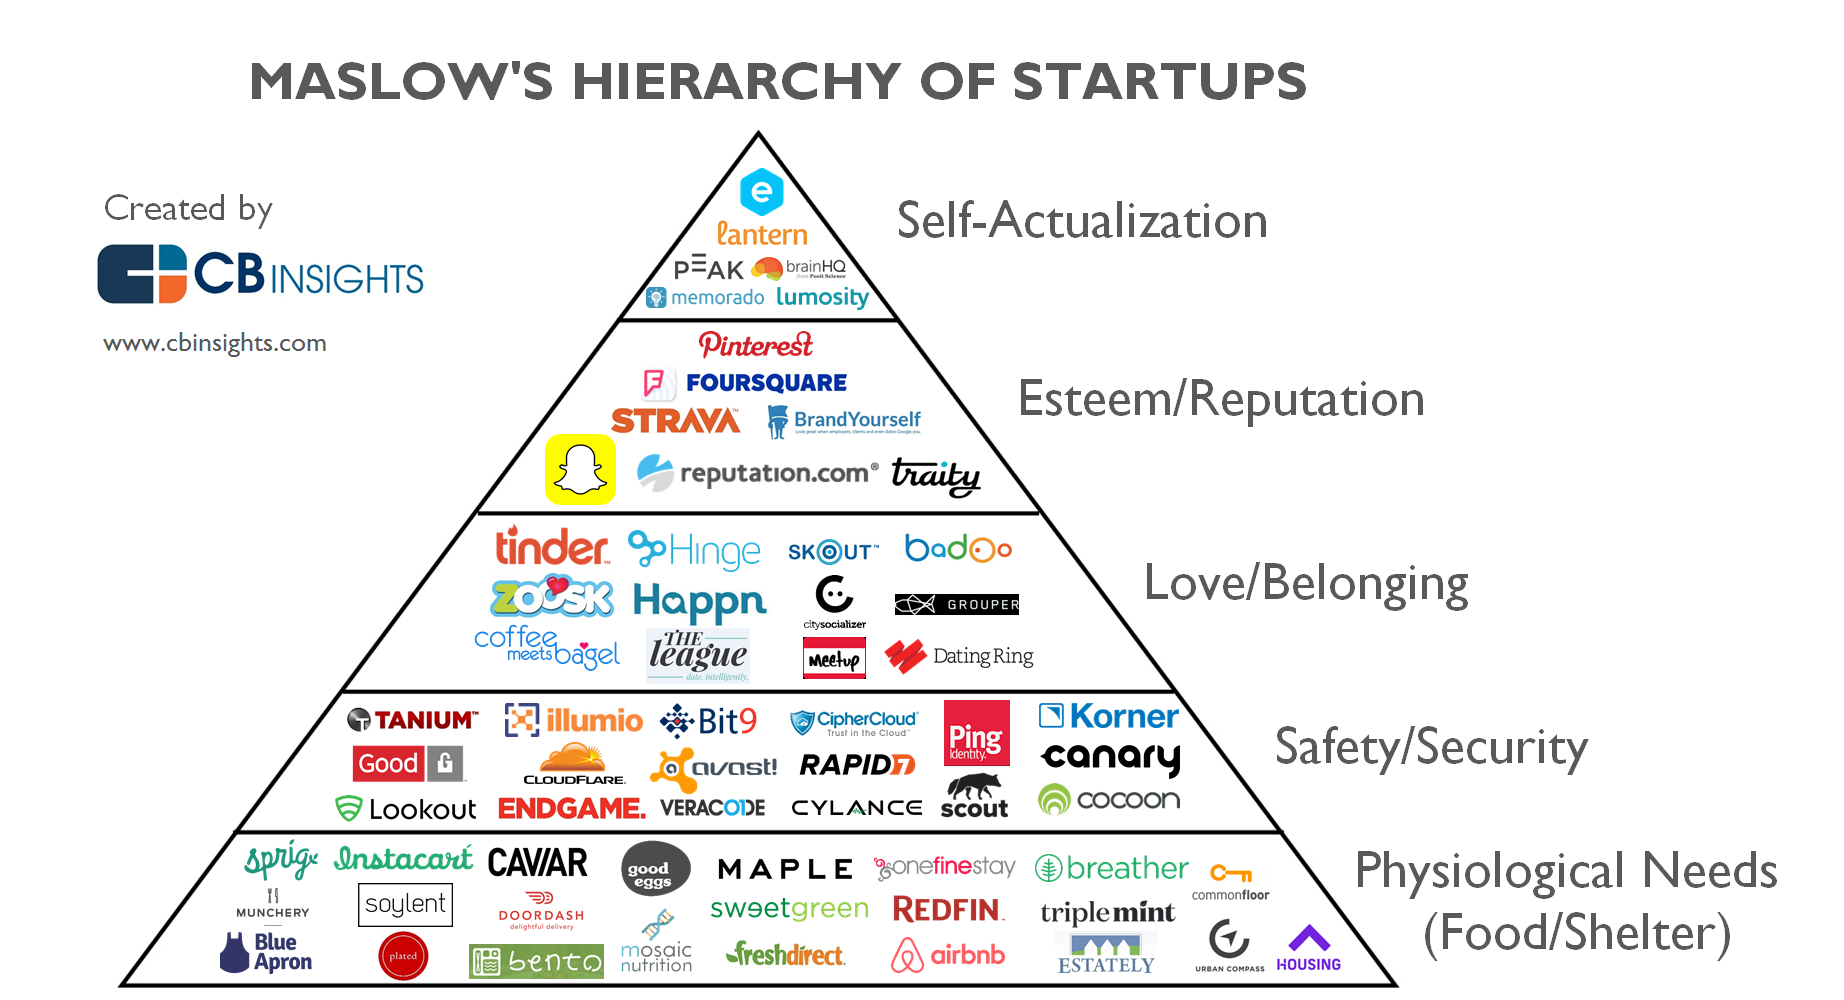 Home Design App Used On Love It Or List It Maslow S Hierarchy Of Startups How Tech Wants To Meet